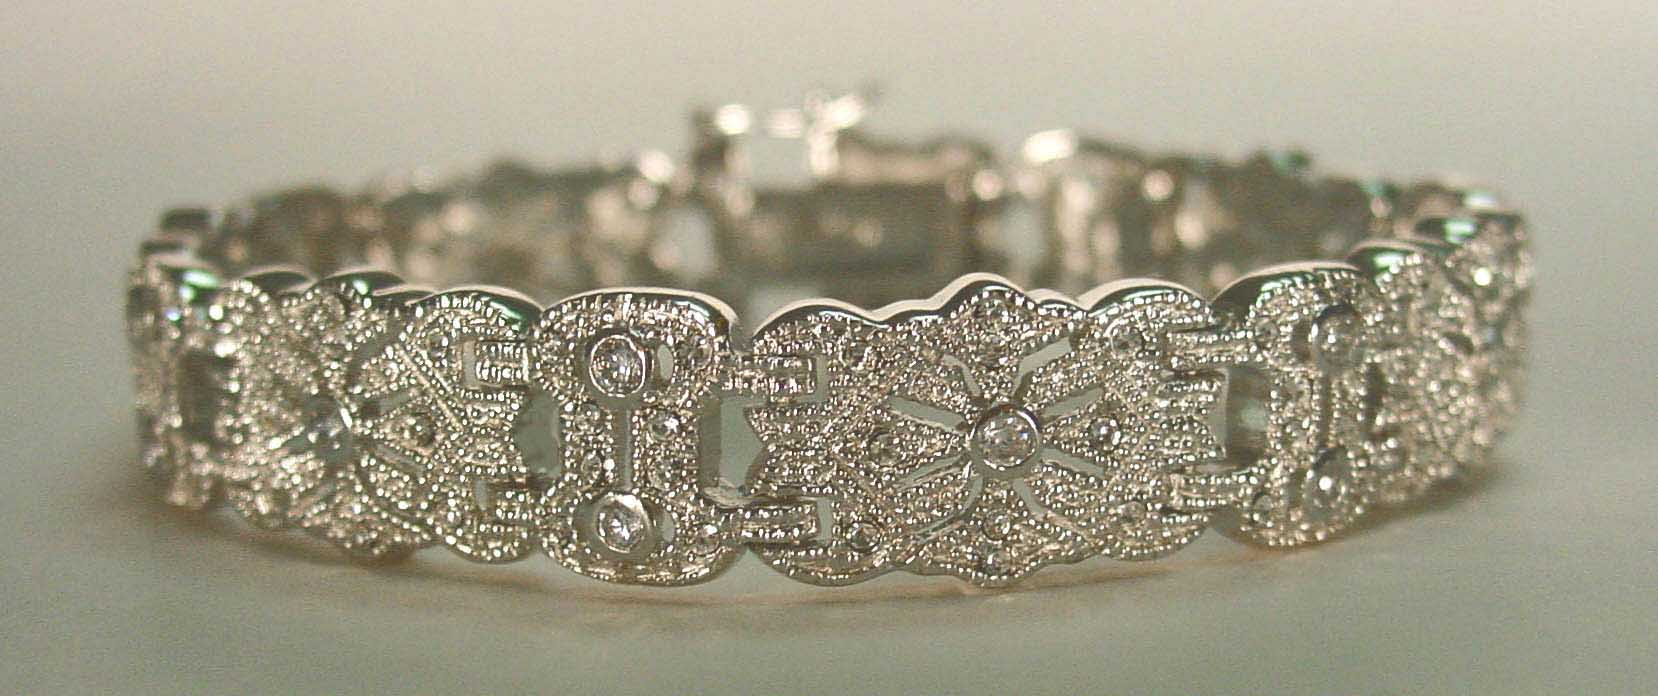 Silver bracelet with CZs and crystal pave